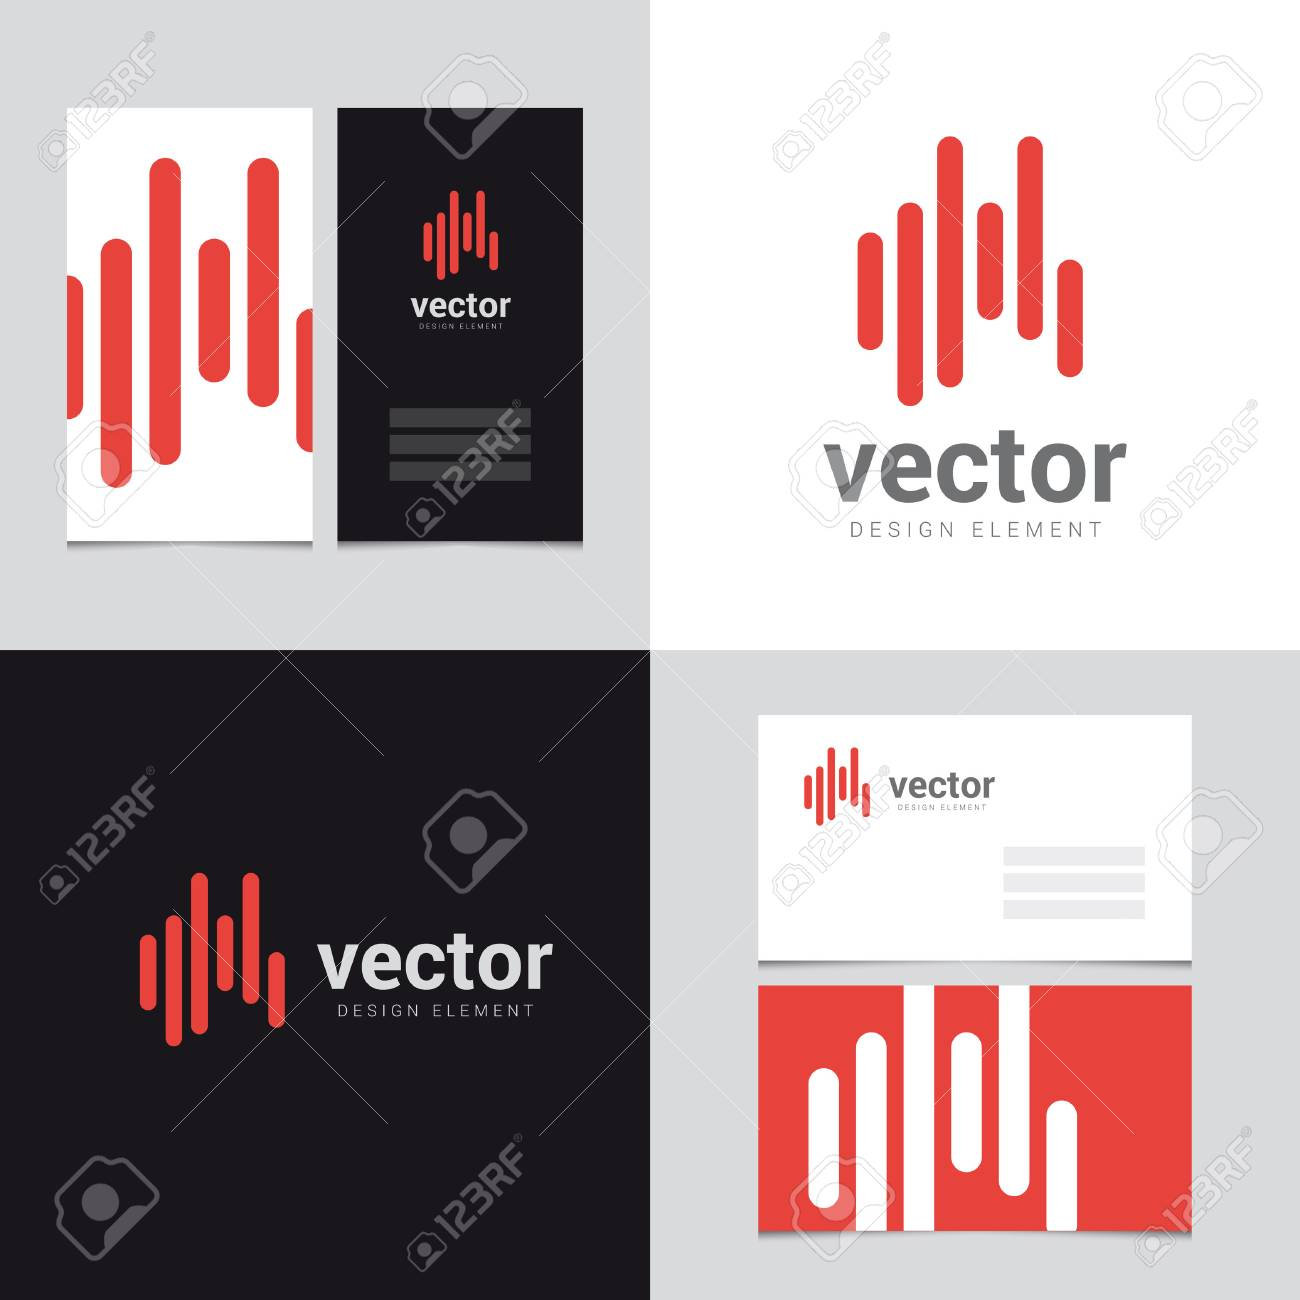 Logo design element with two business cards template 24 vector logo design element with two business cards template 24 vector graphic design elements for colourmoves